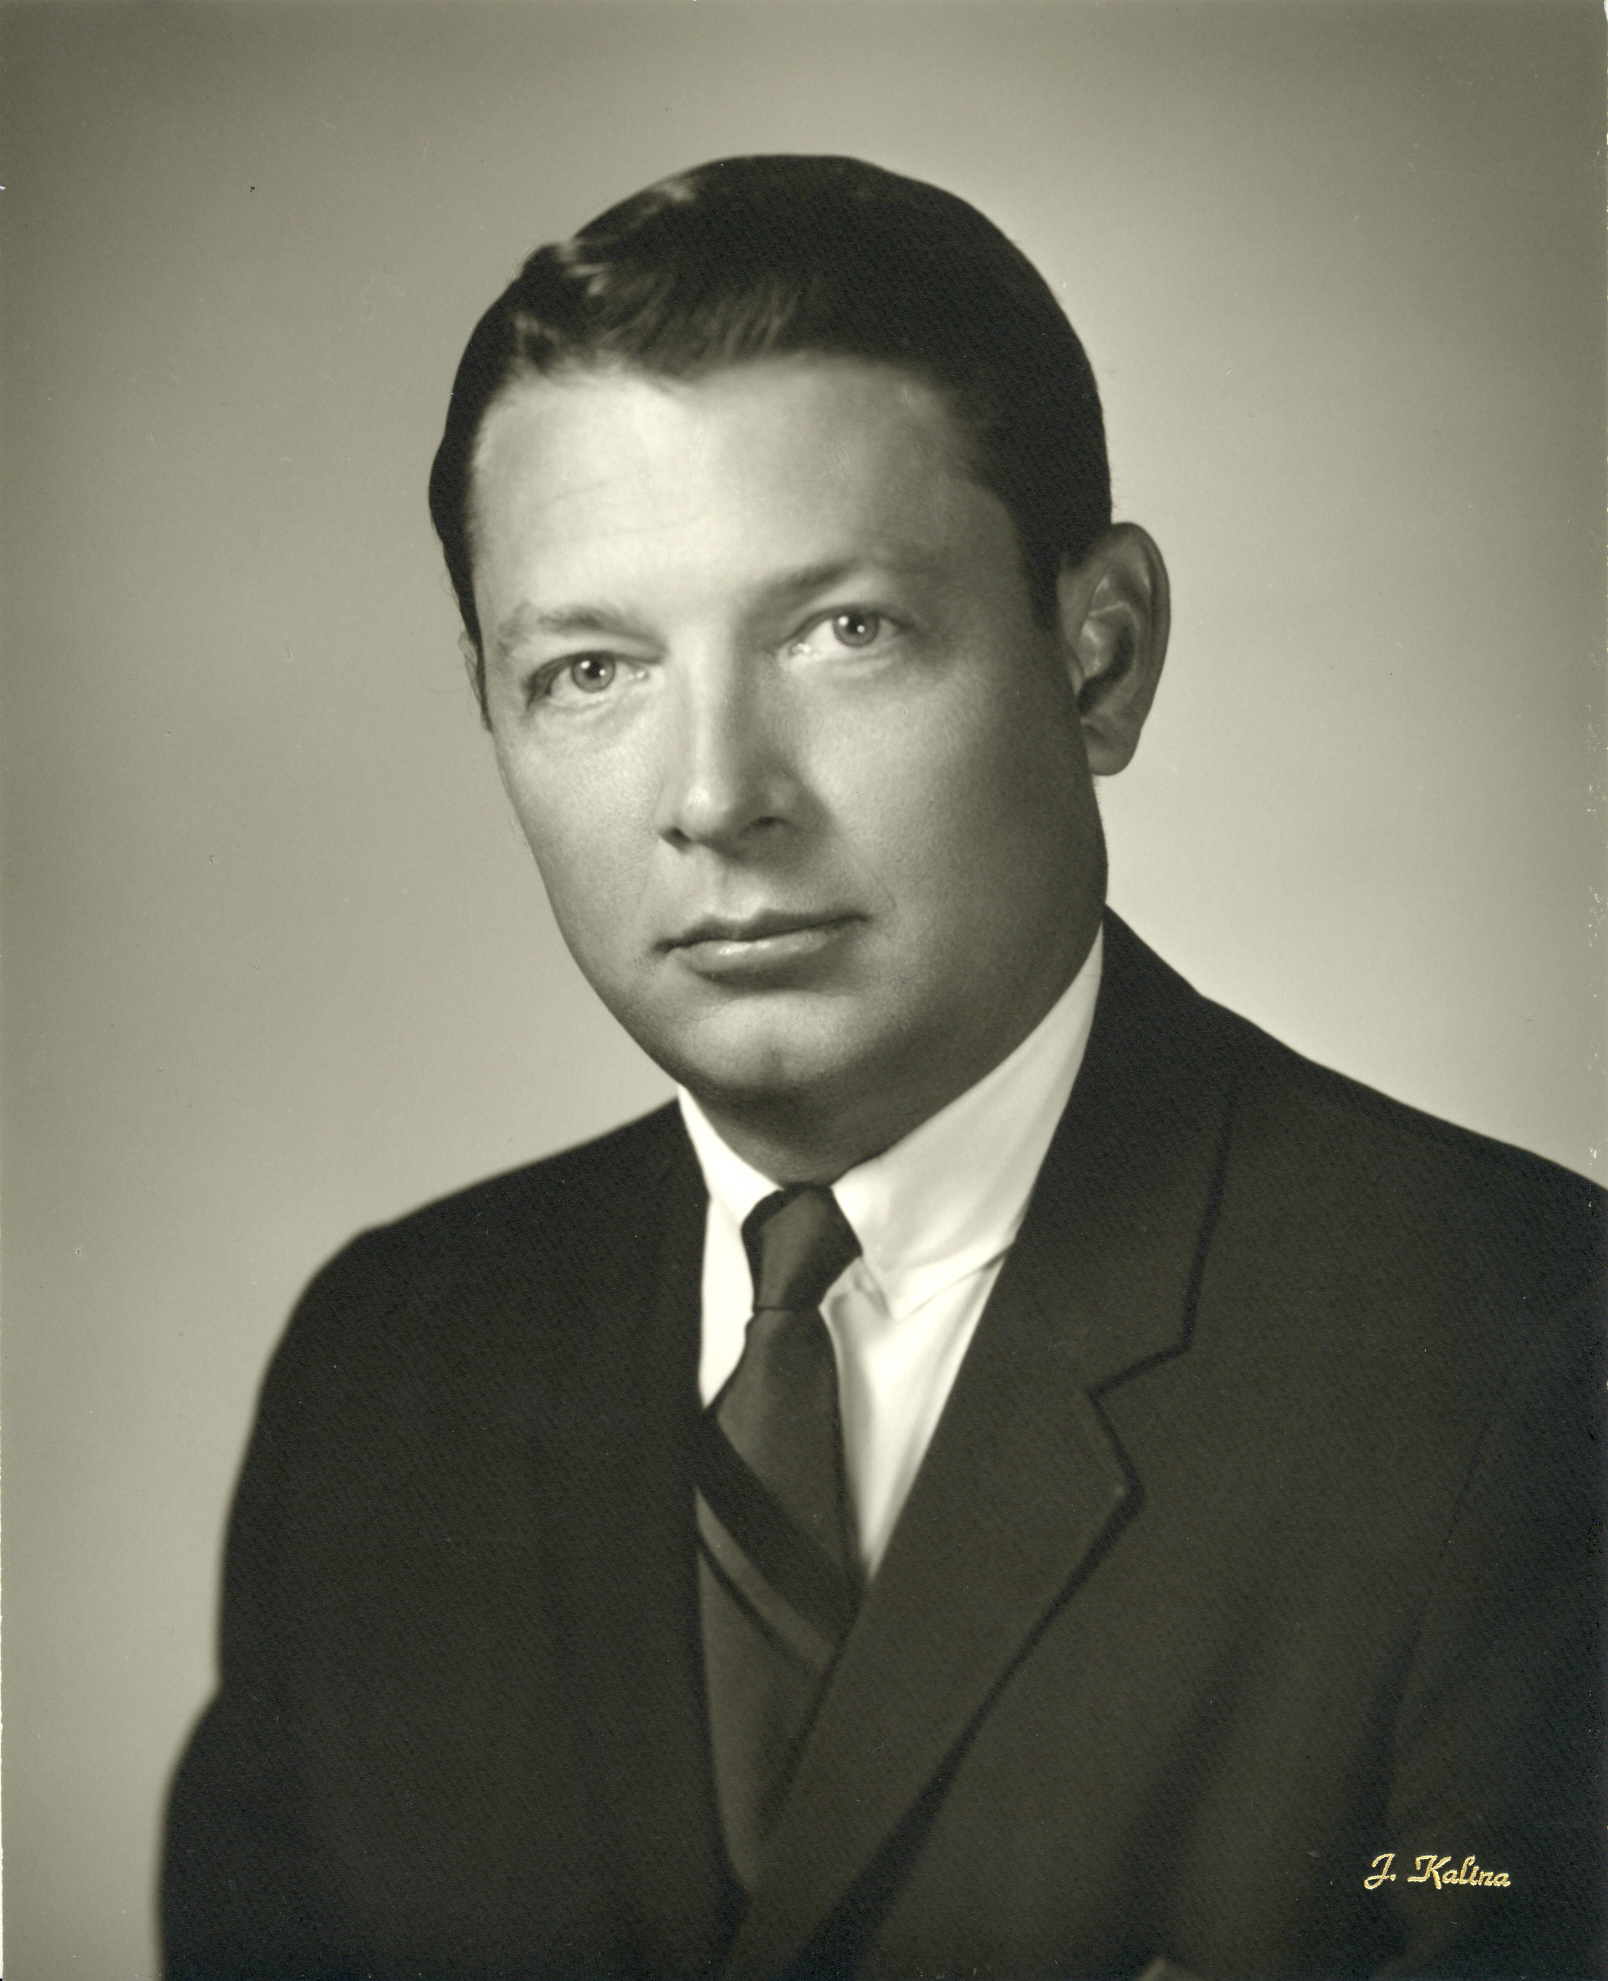 William J. Hetzler